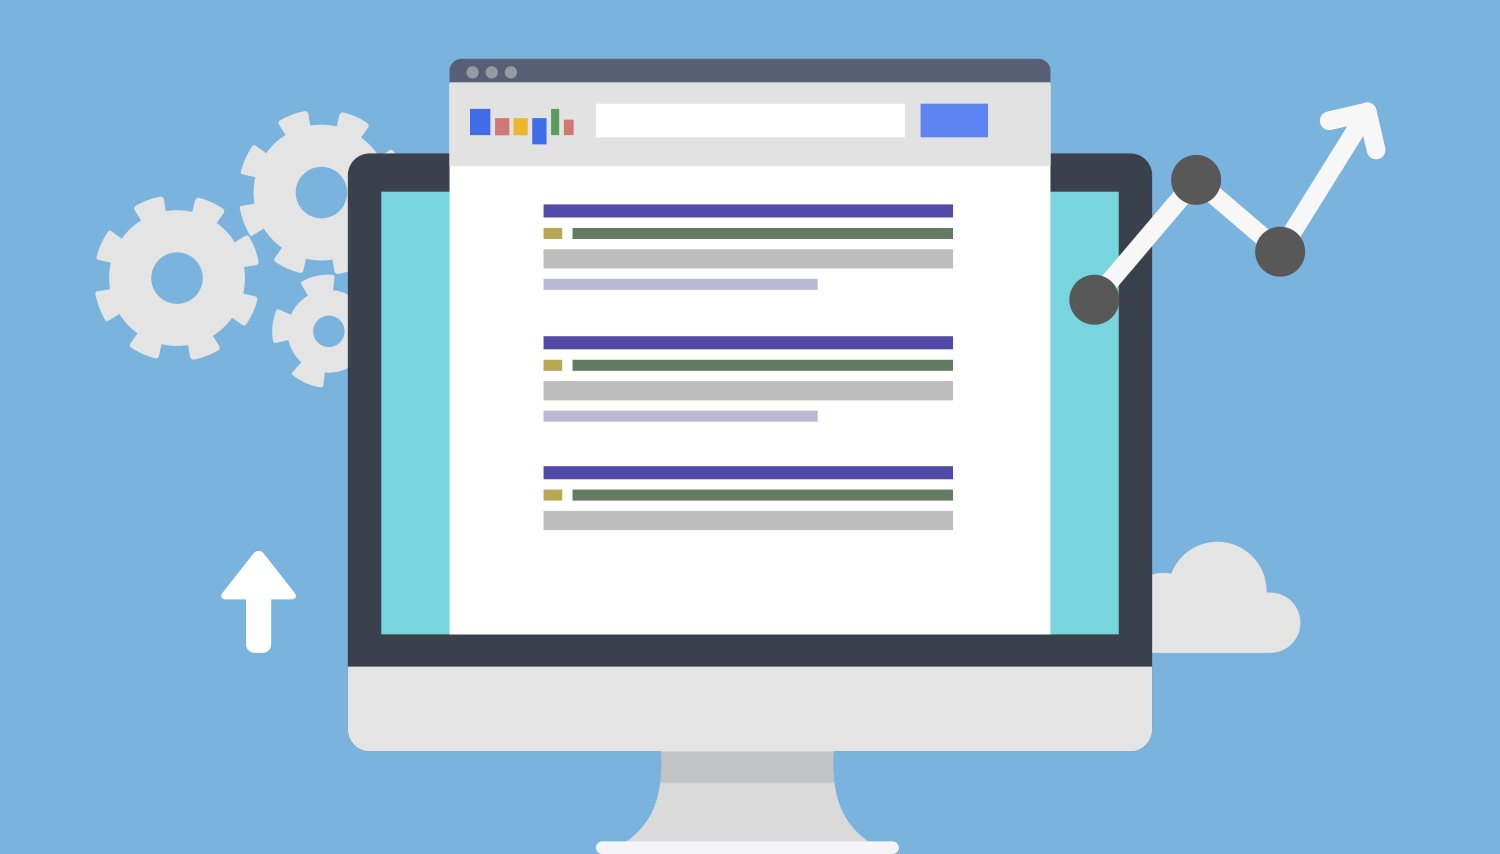 Google Ads - Should I incorporate them in my marketing strategy?